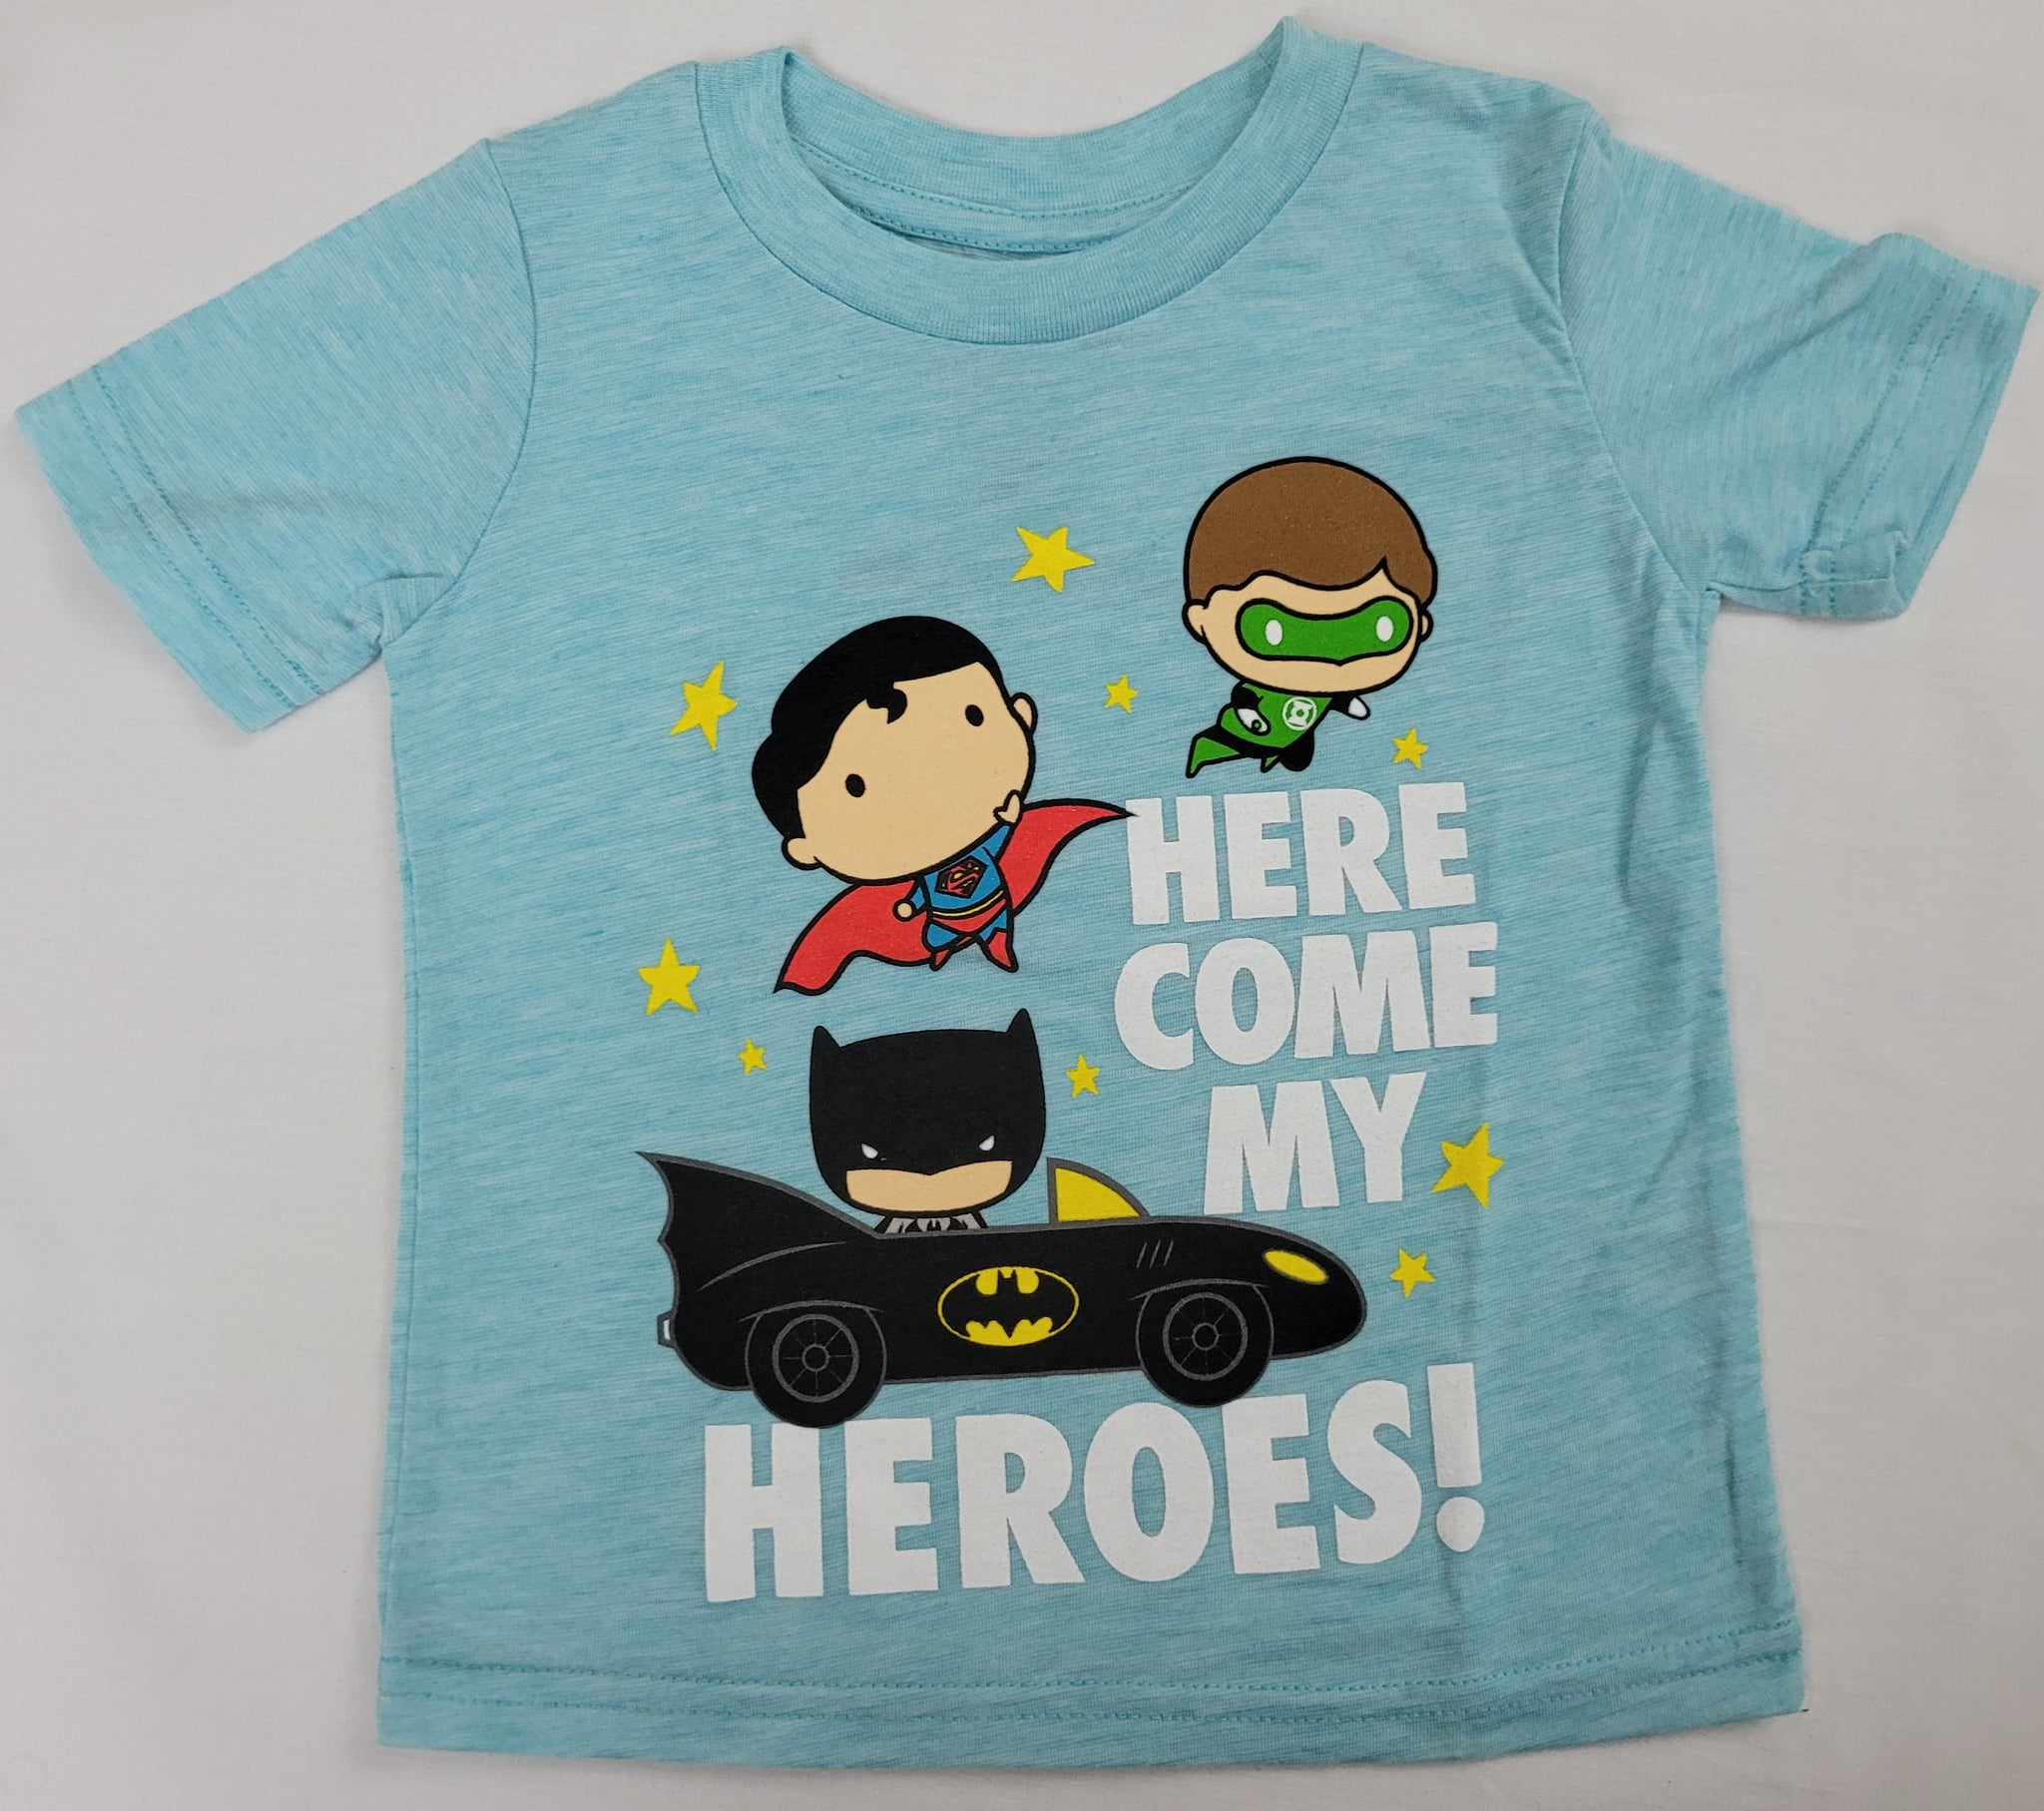 Green Lantern Superman Batman Here Come My Heres Boys T-Shirt 2T 5T